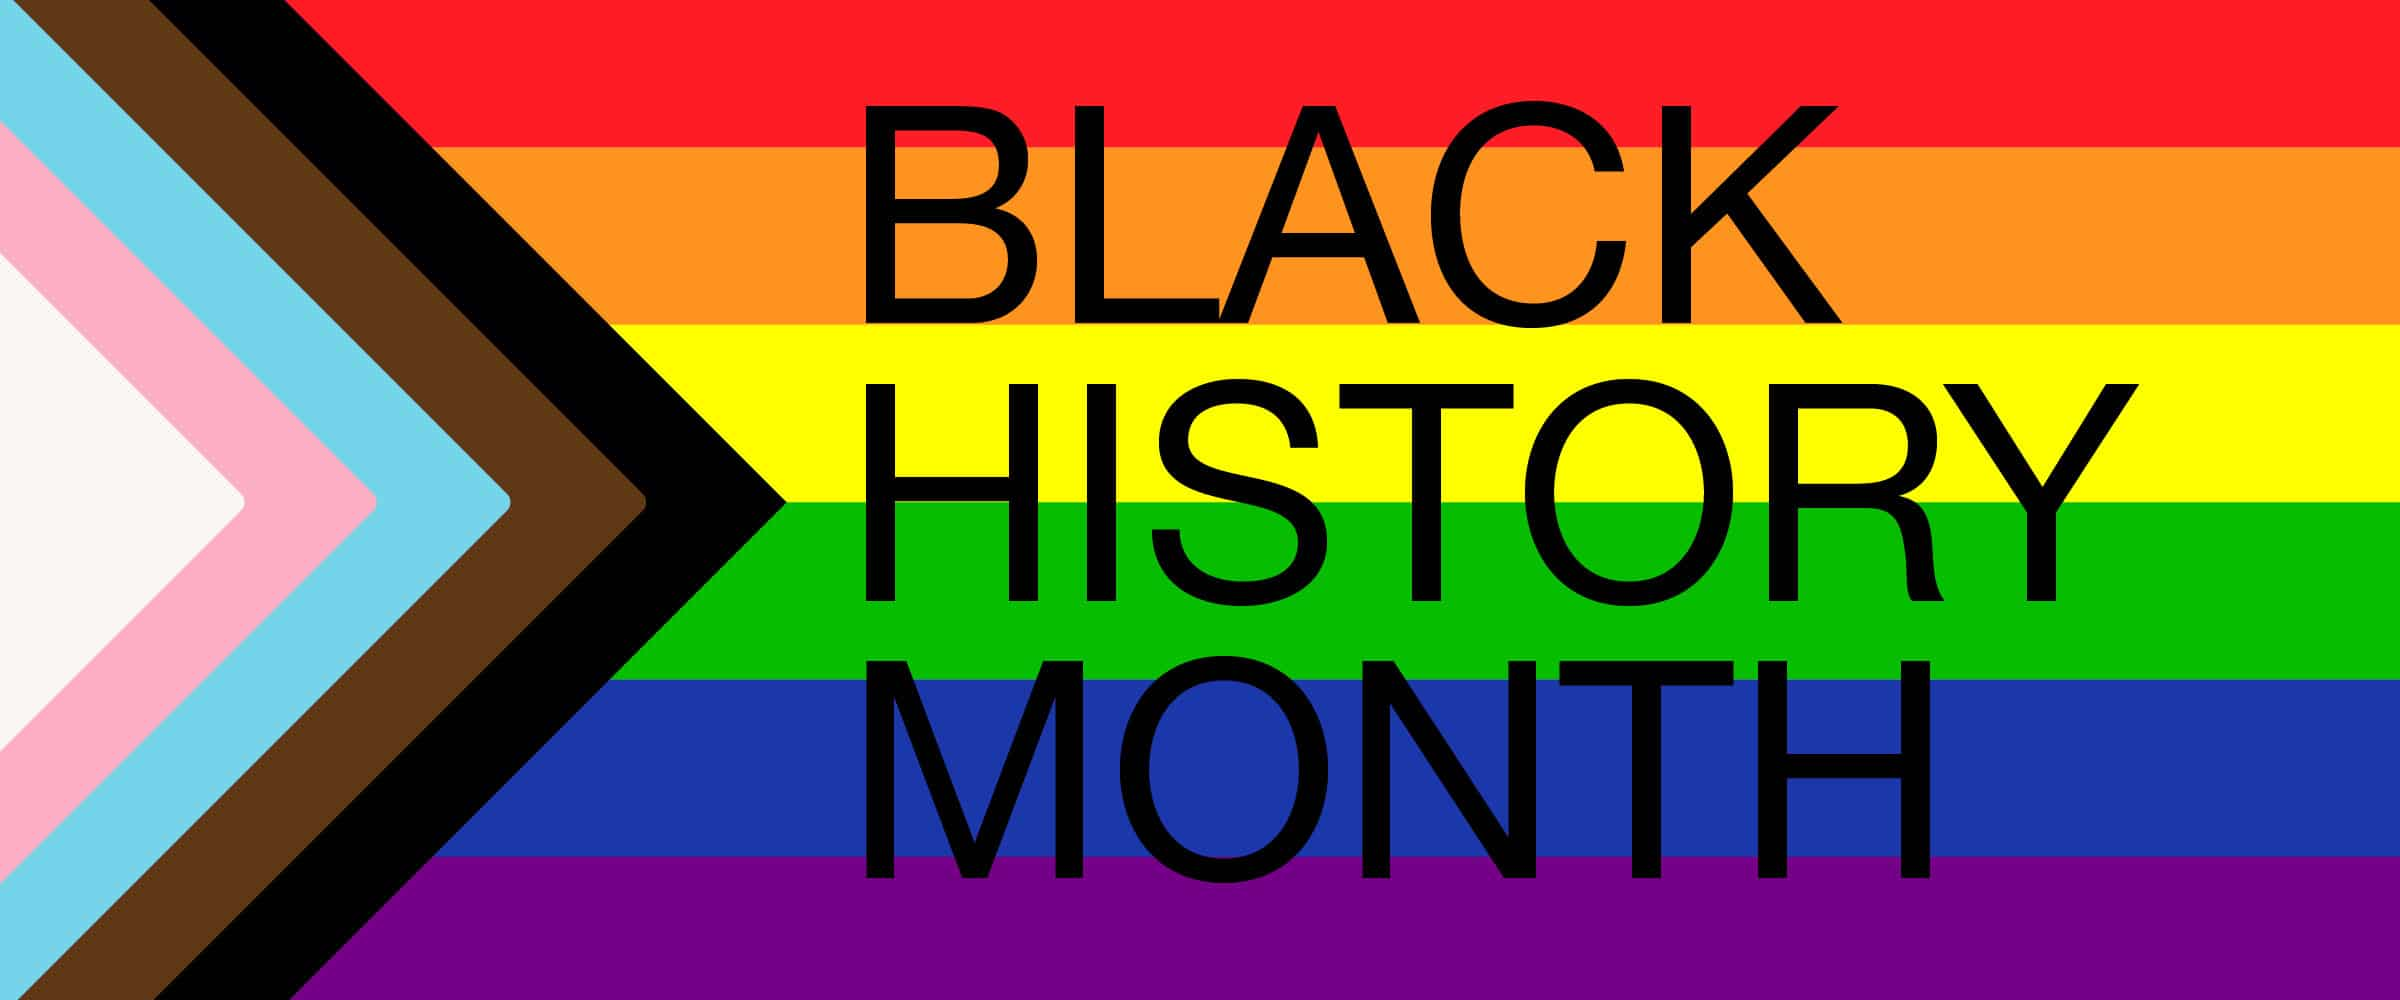 black history month header 2021